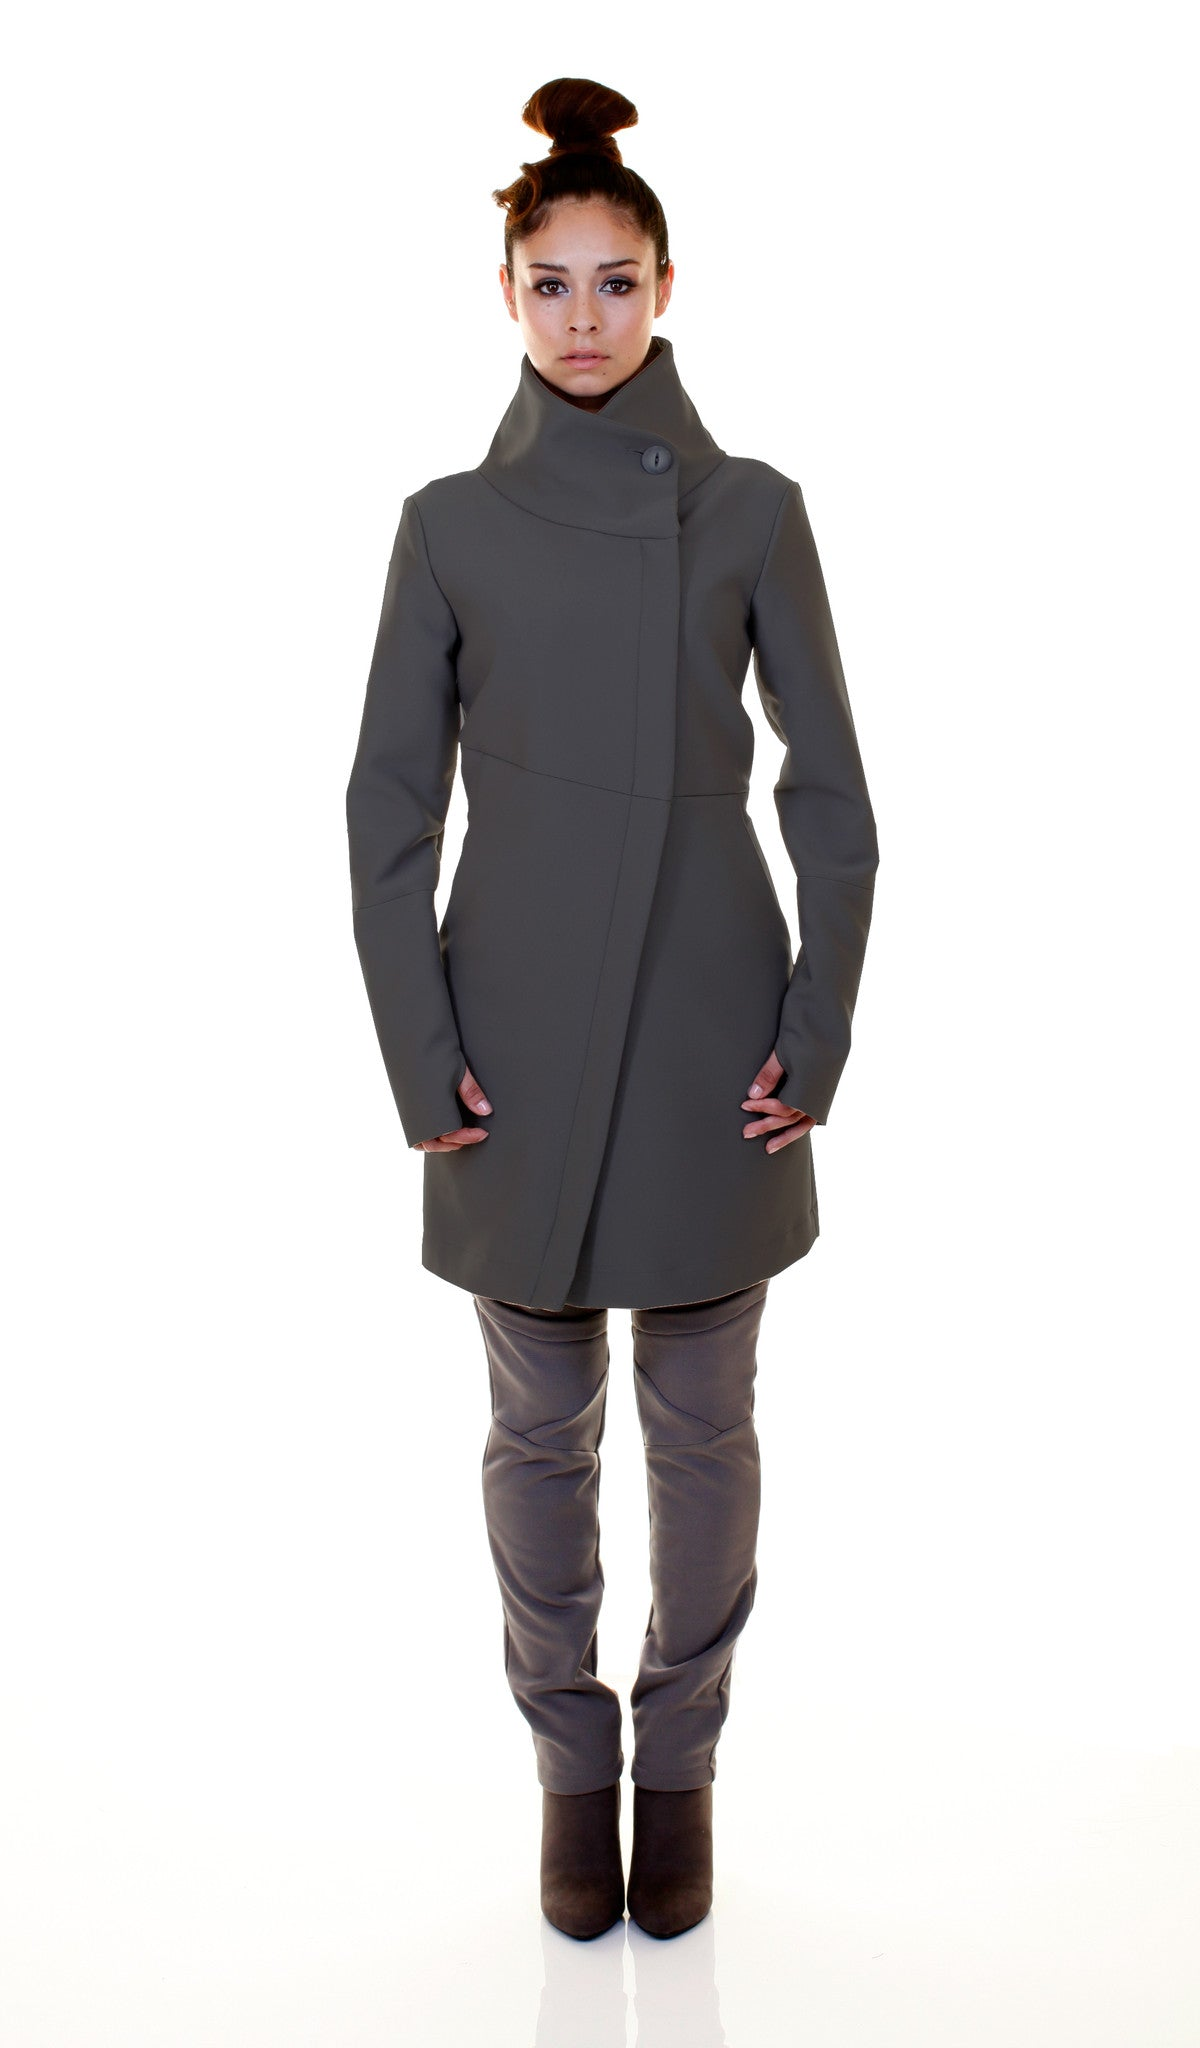 High Funnel Neck Angled Zip Jacket w/ Thumbholes in Smoke Grey